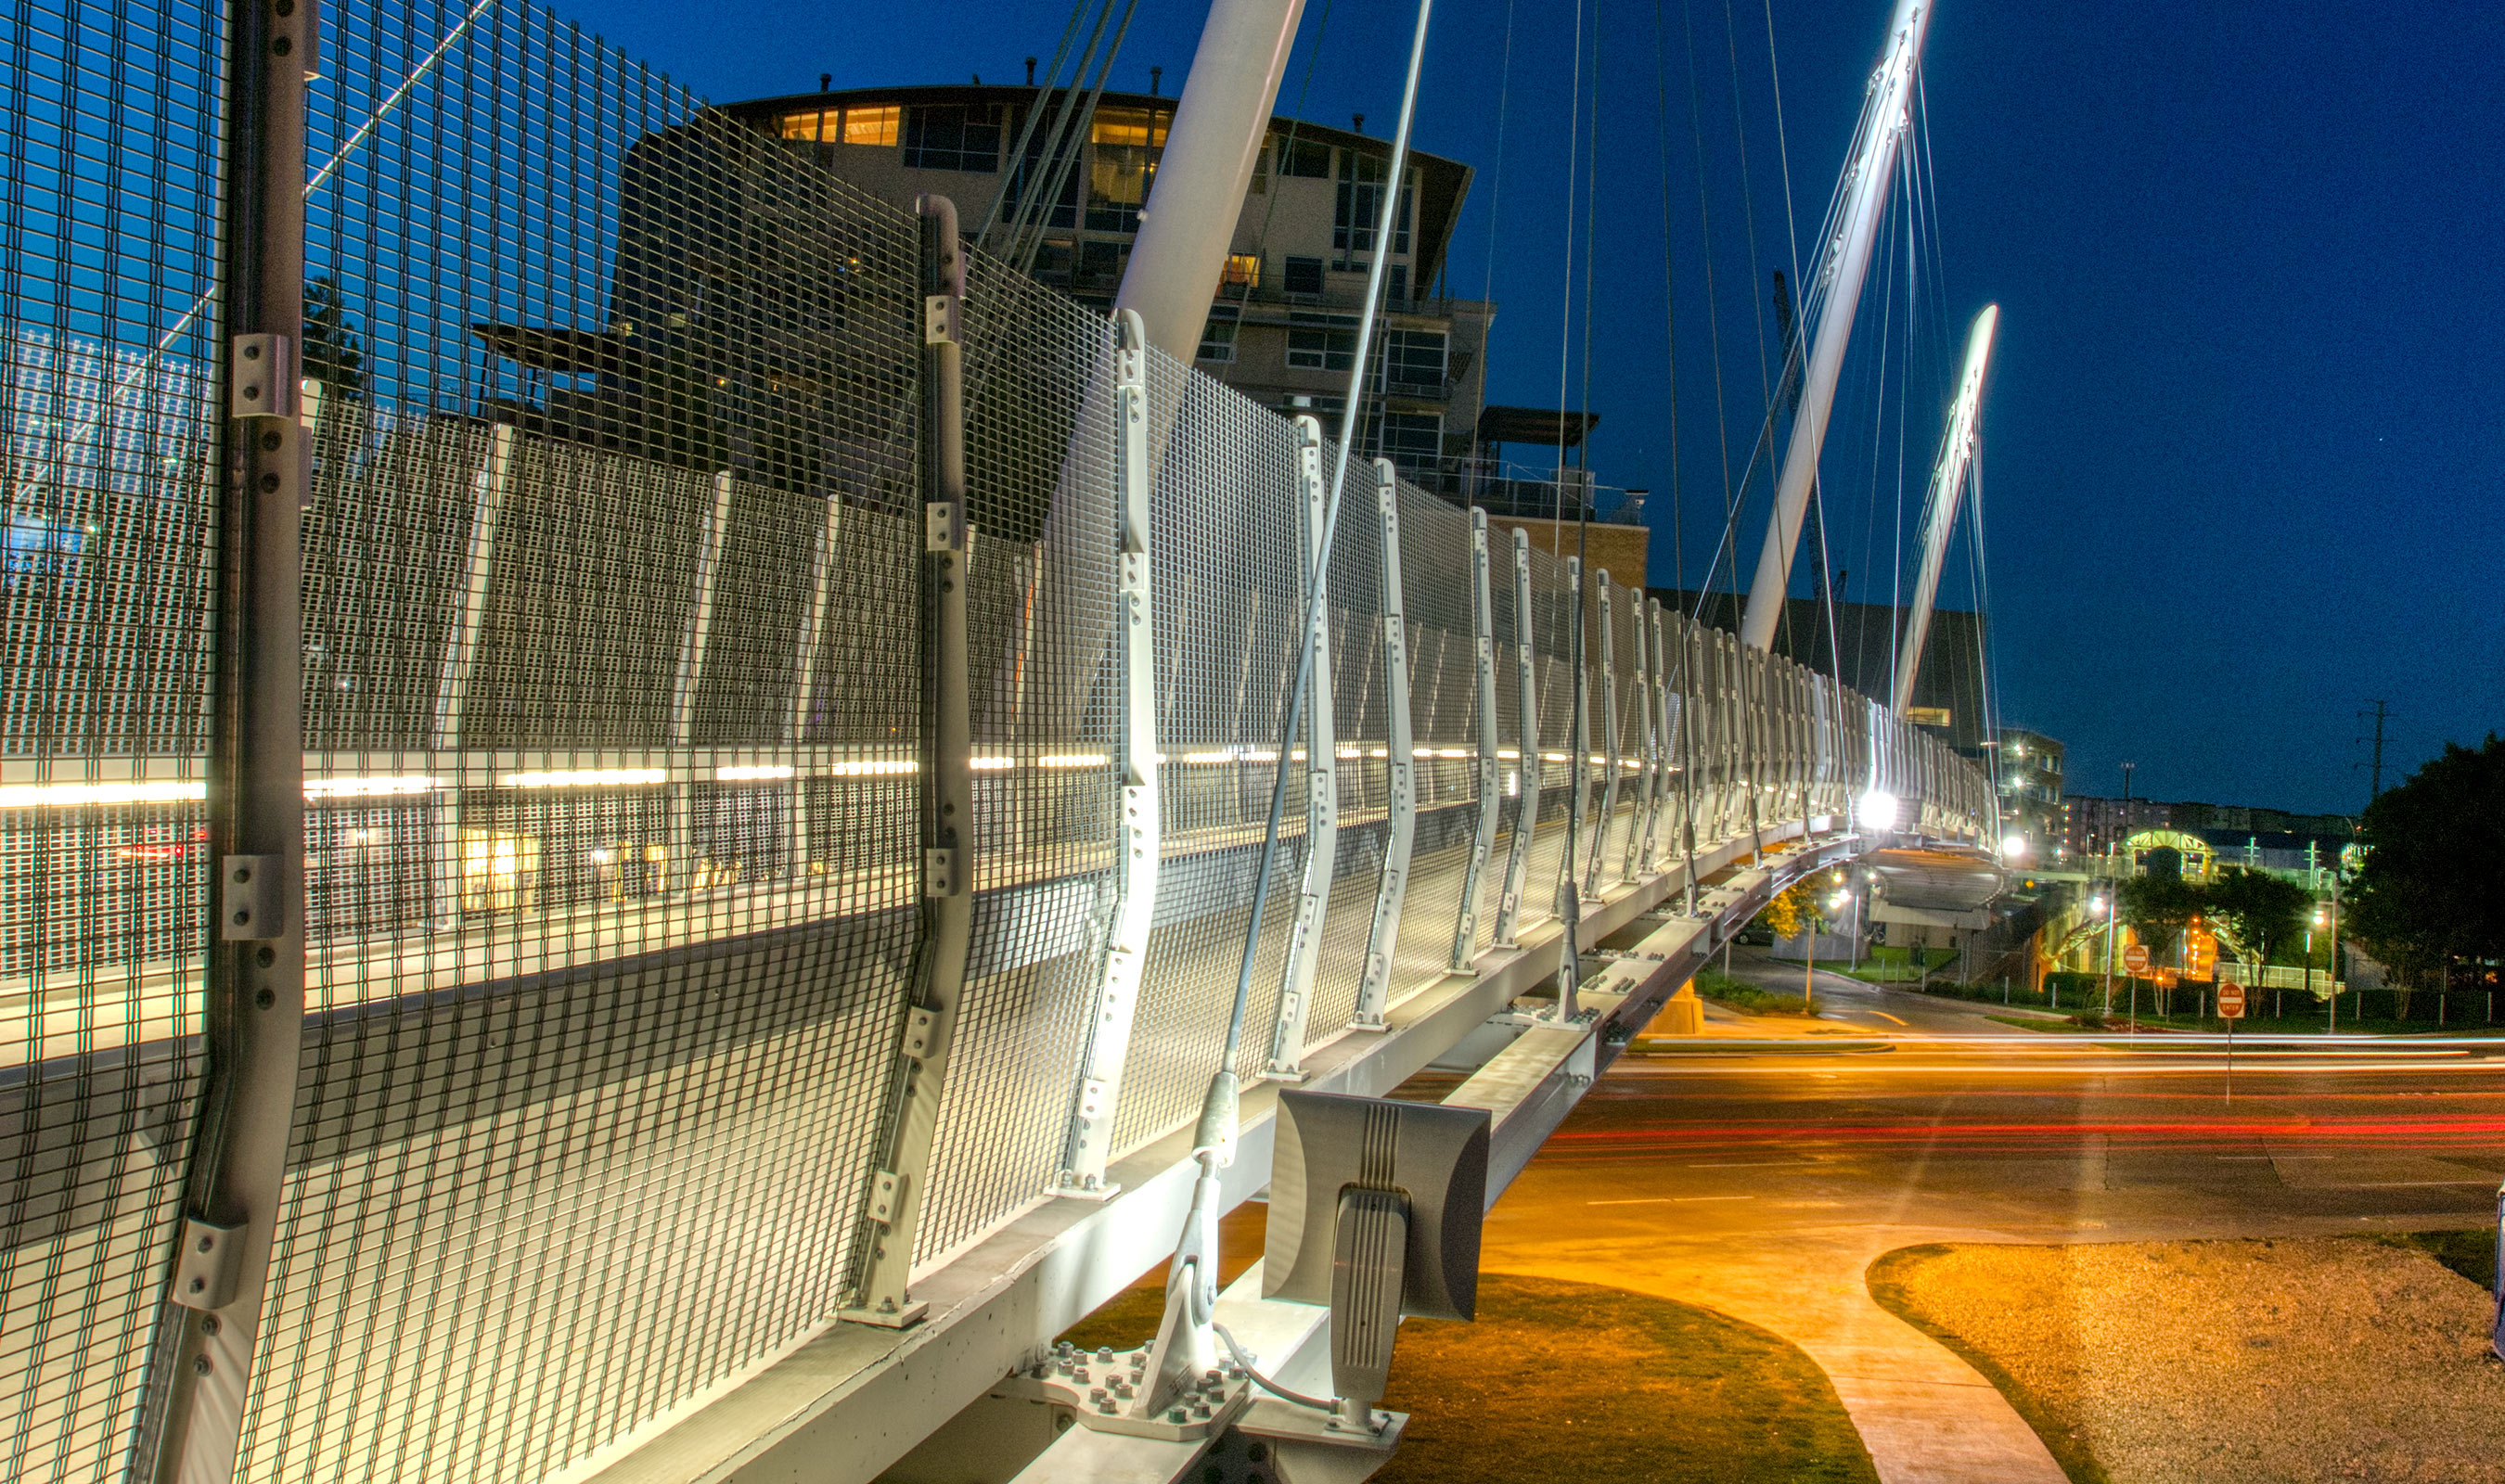 At night, lights shine on the Mockingbird Bridge, causing Banker Wire's M13Z-146 to blend in with the nighttime surrounds.